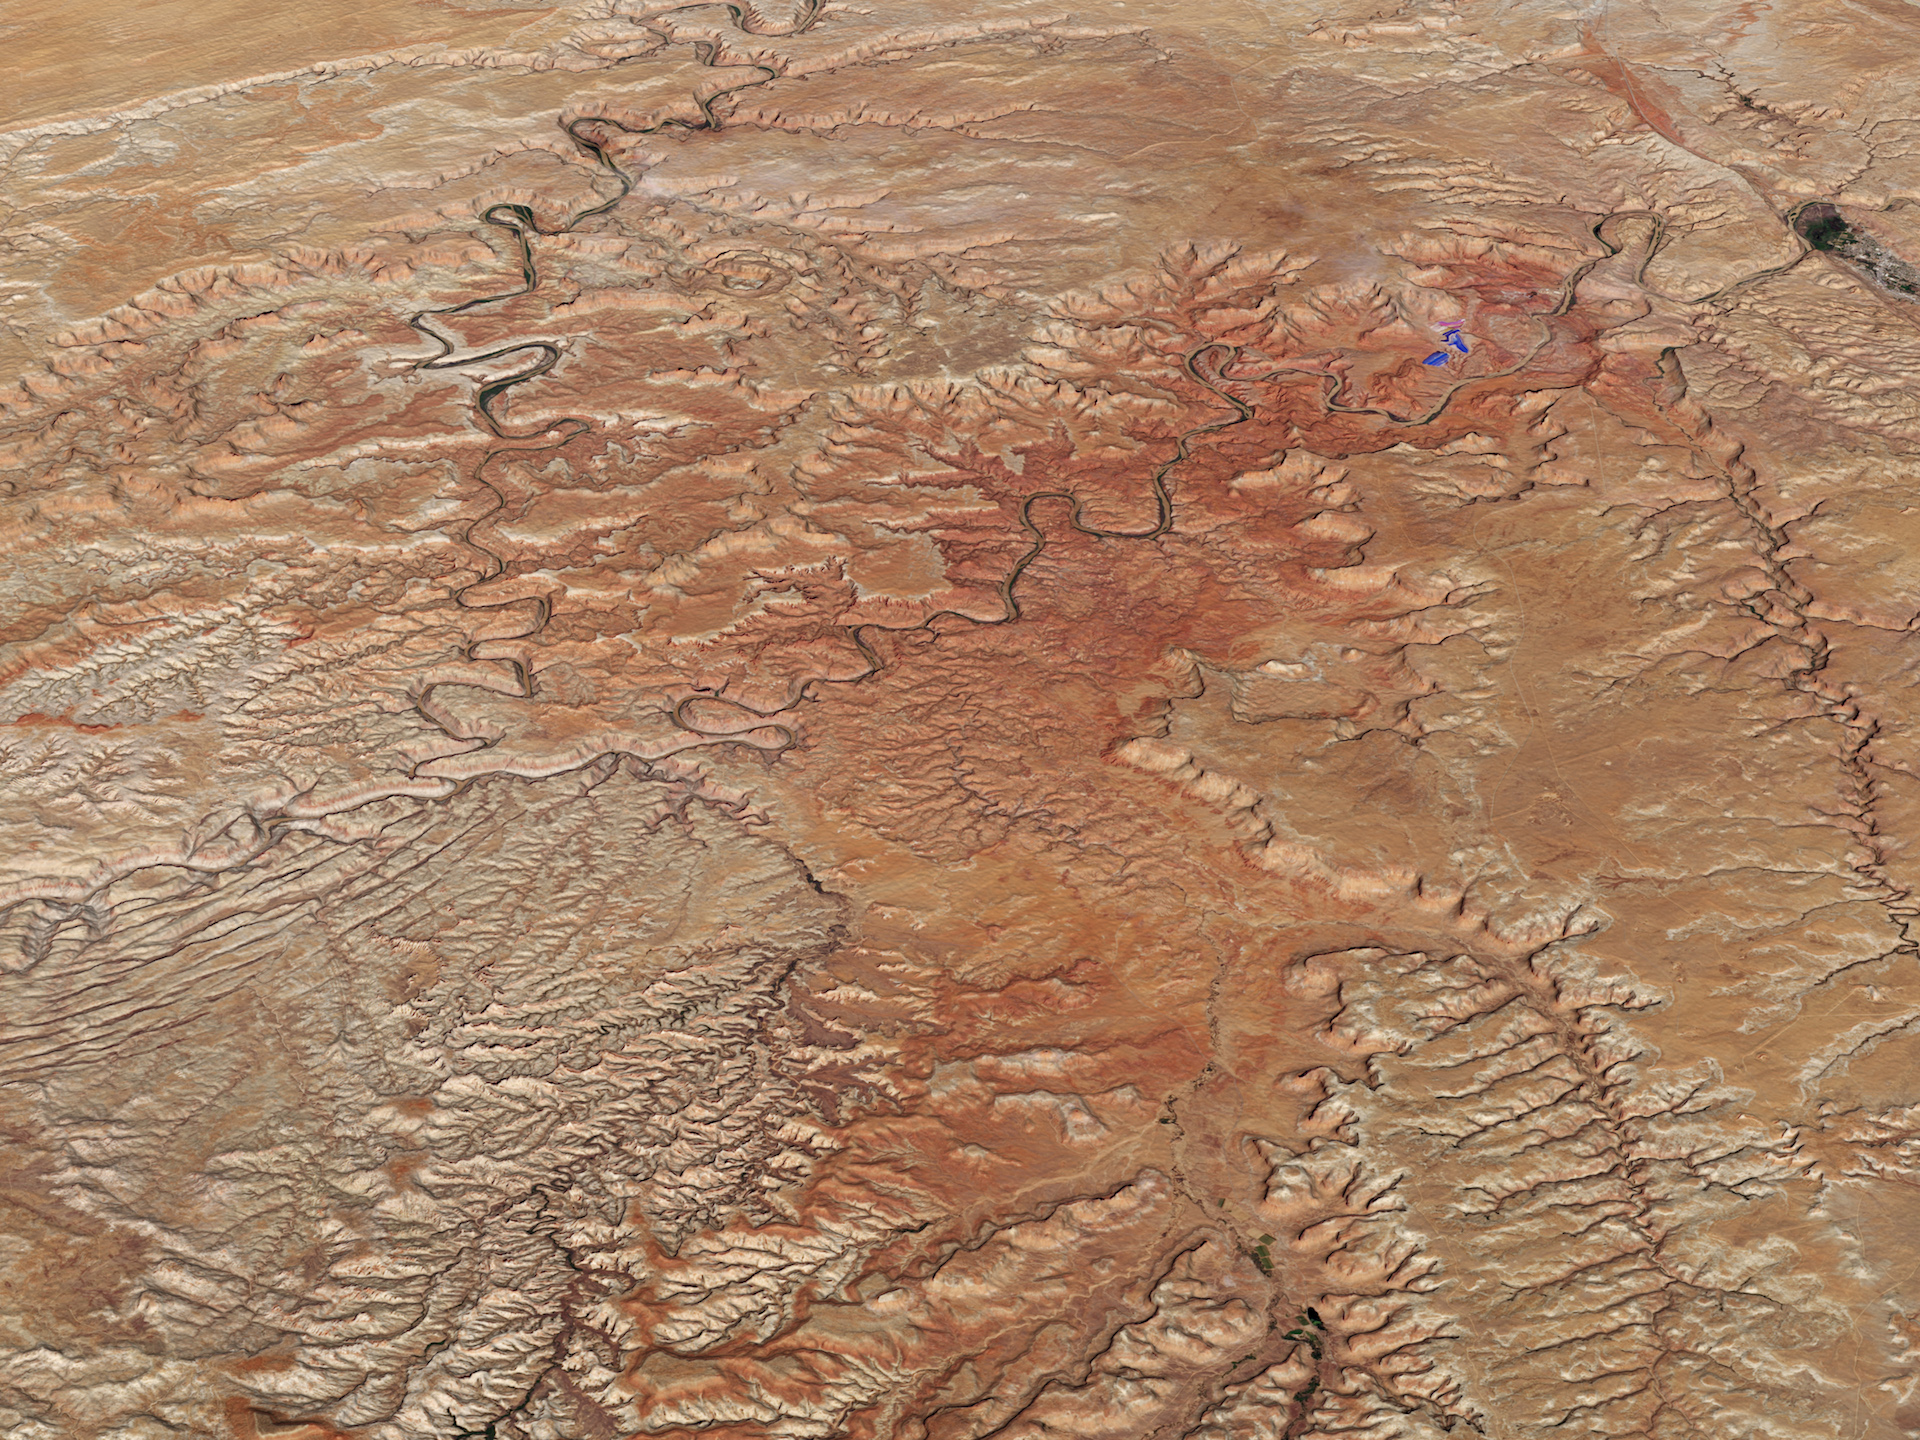 Today's Image of the Day comes thanks to the NASA Earth Observatory and features a look at Canyonlands National Park in southeastern Utah.